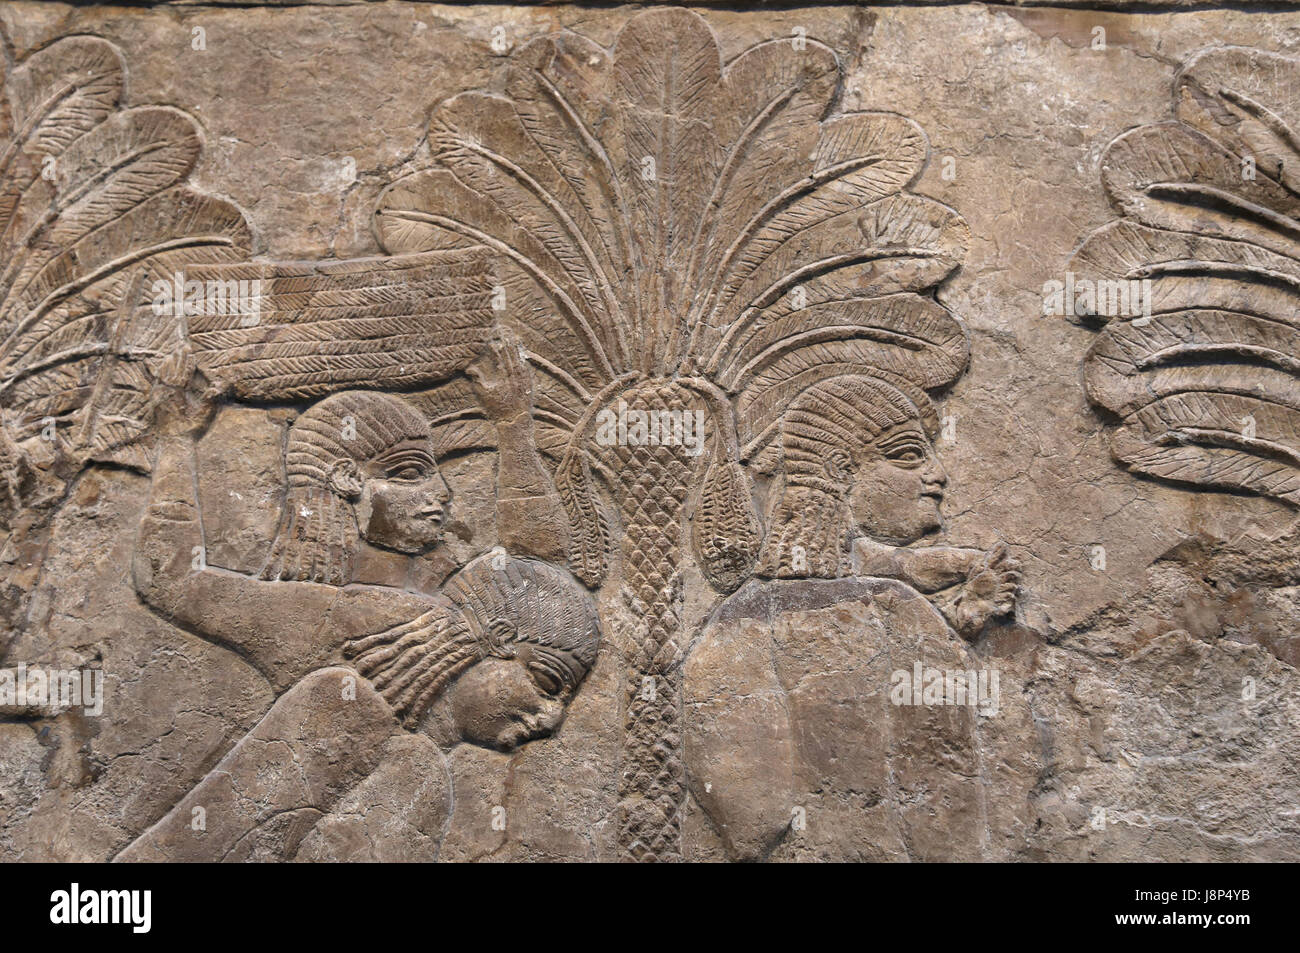 Campaigning in southern Iraq. Prisoners acompanied by their families. Assyrian, 640-620 BC. Nineveh, South-West - Stock Image